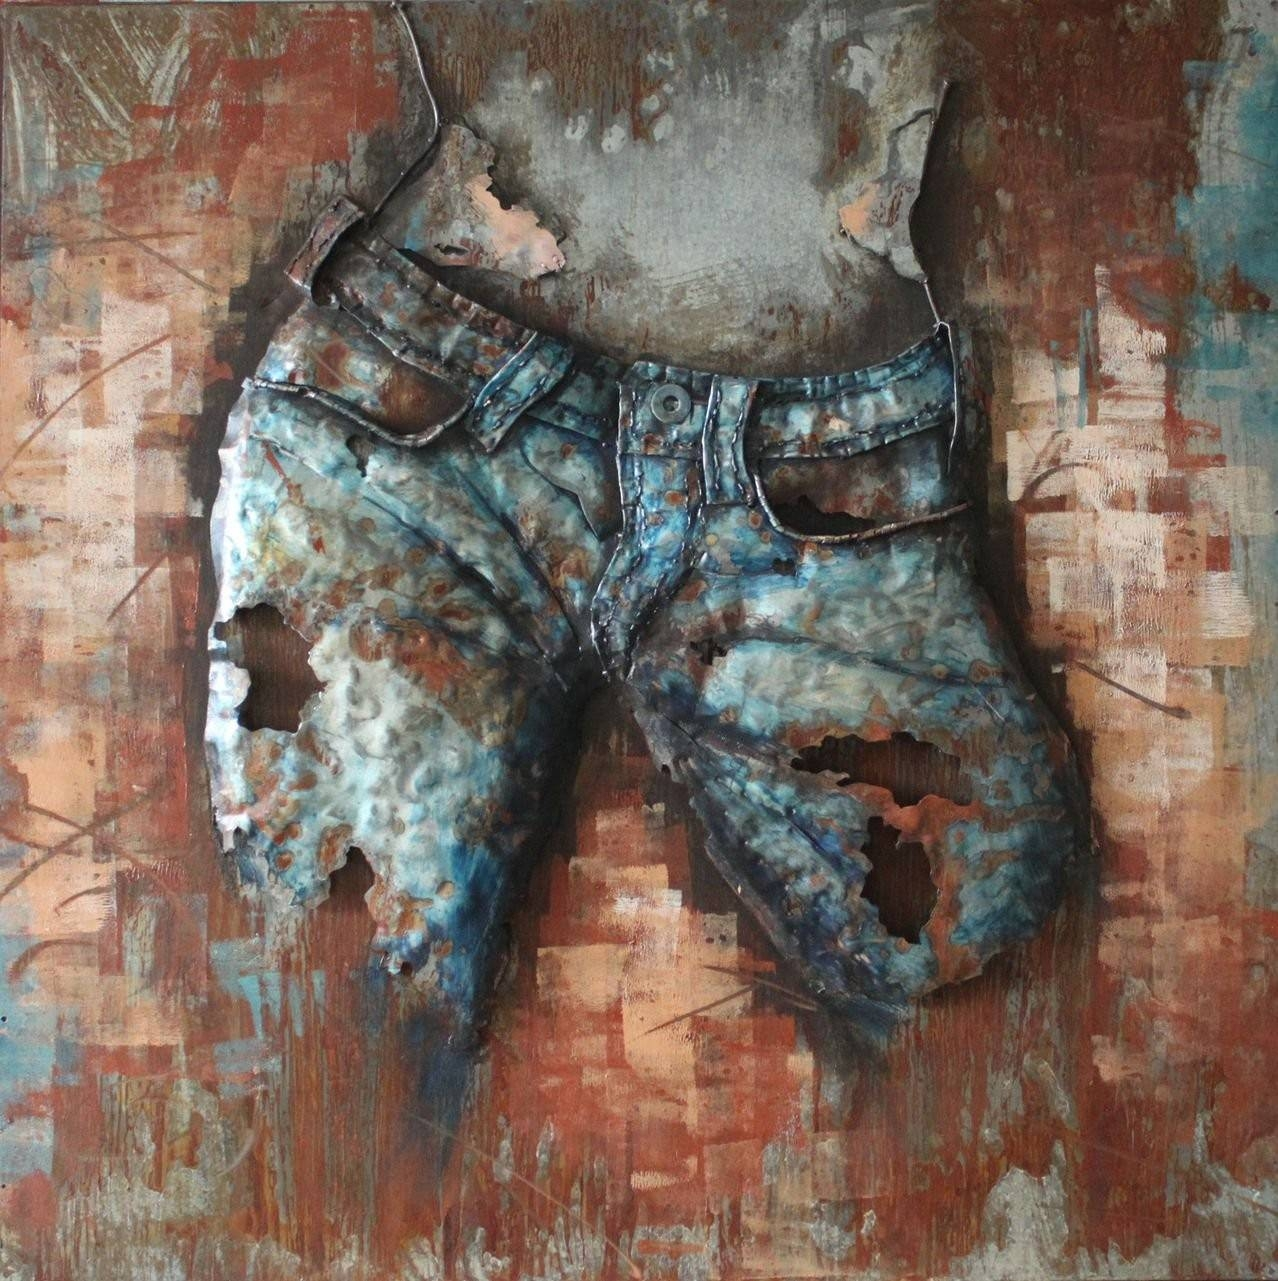 Jeans Cowgirl(Front) – 3D Metal Wall Art – Metal Wall Art With Regard To Recent 3D Metal Wall Art (Gallery 1 of 20)